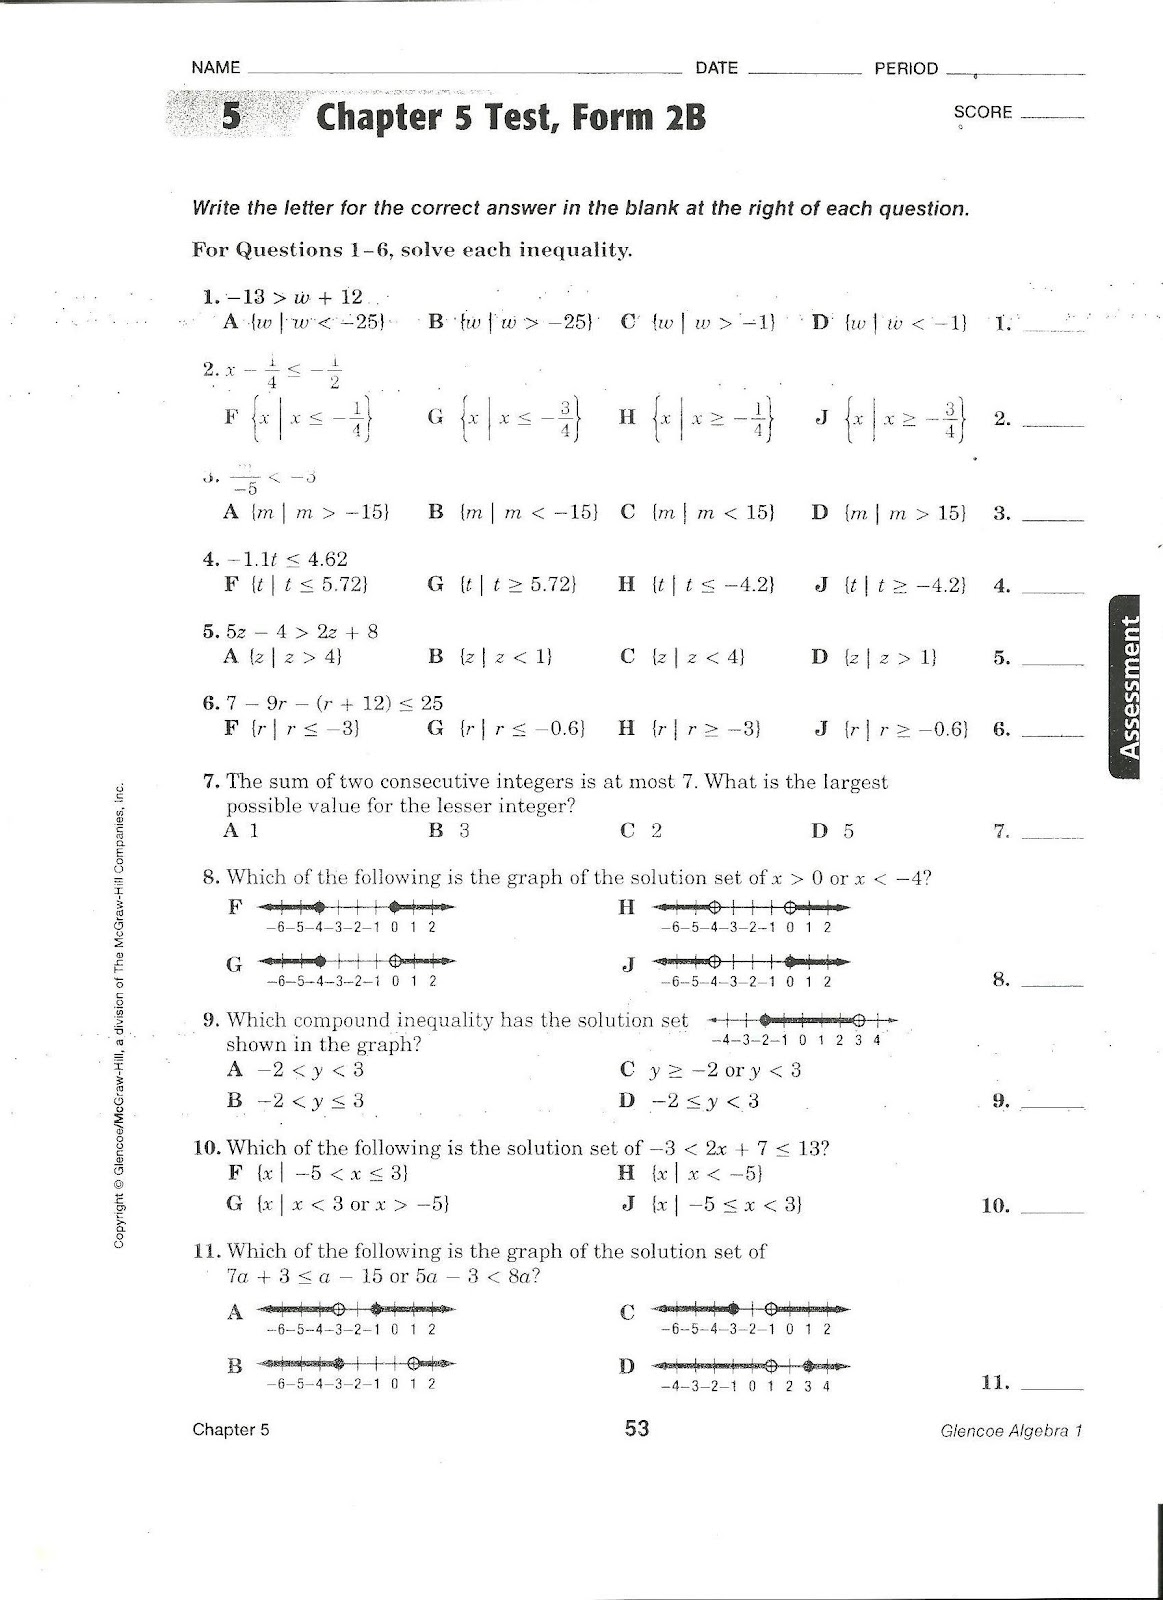 Coach Gober S Algebra Class Chapter 5 Test Form 2b Assigned January 16